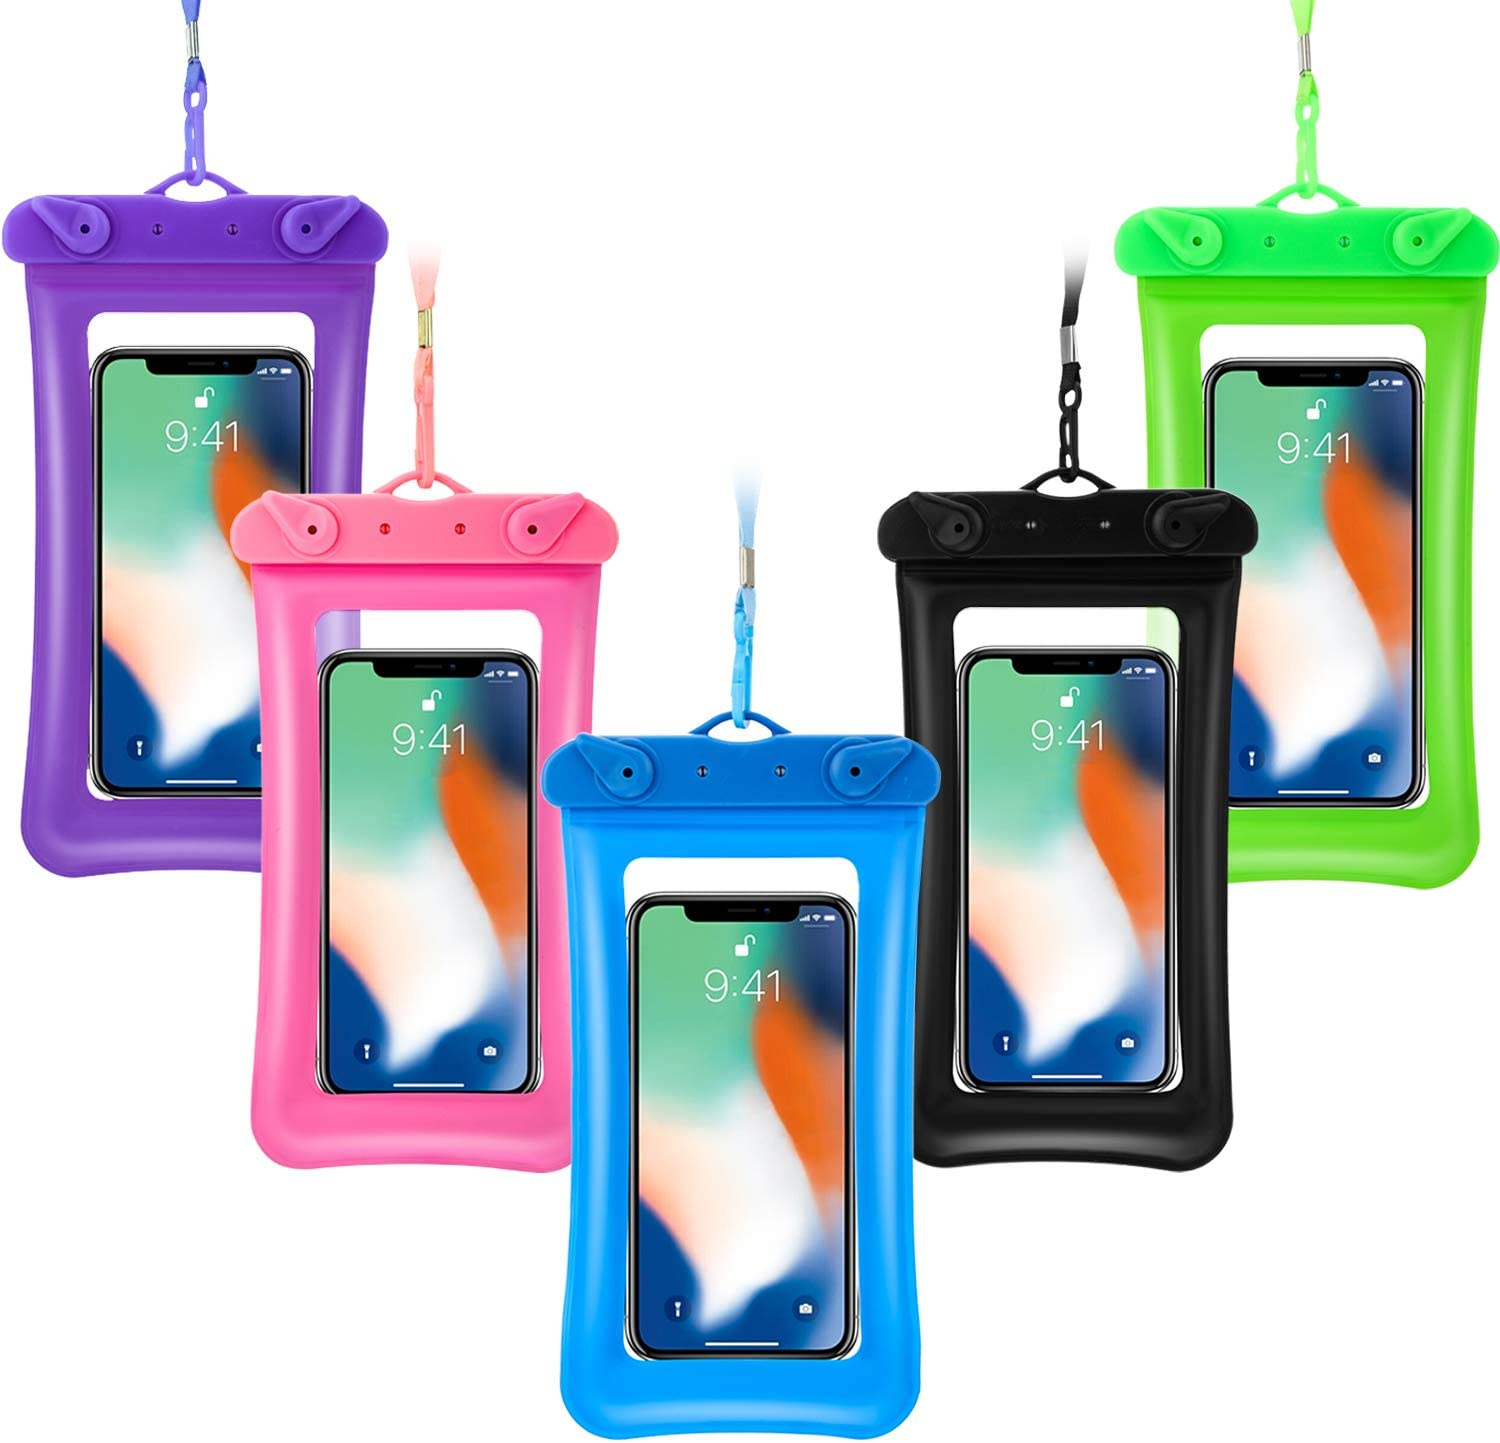 5 Pieces Floating Waterproof Phone Pouch Floatable Waterproof Case Universal Cellphone Dry Bag with Lanyard Beach Underwater Pouch for Smartphone up to 6.5 Inch (Green, Rose Red, Blue, Purple, Black)